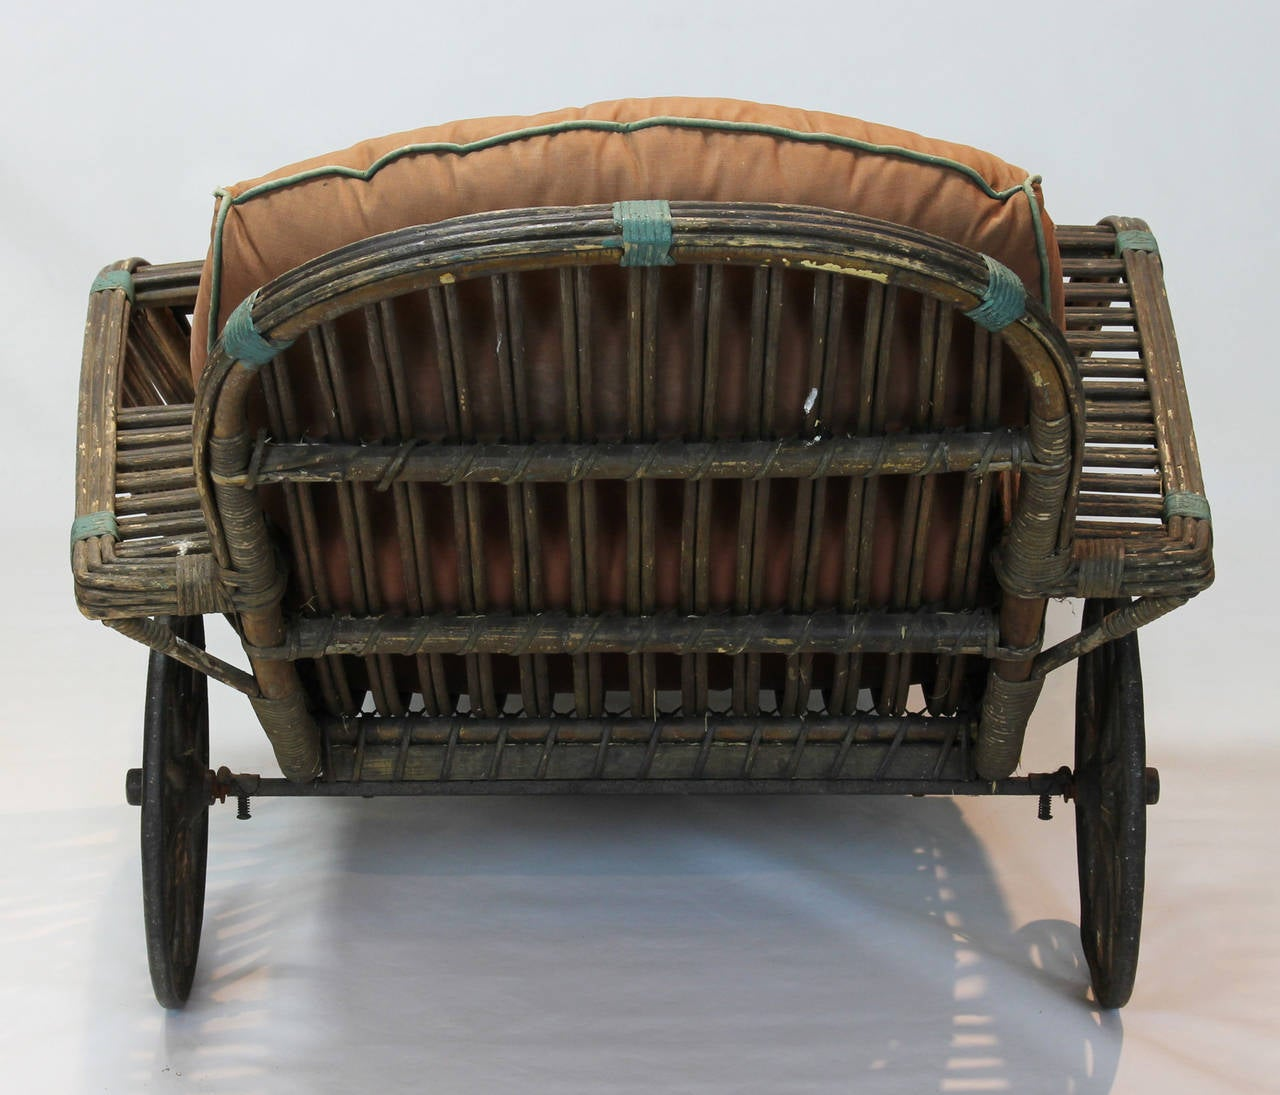 Antique stick wicker chaise at 1stdibs for Antique wicker chaise